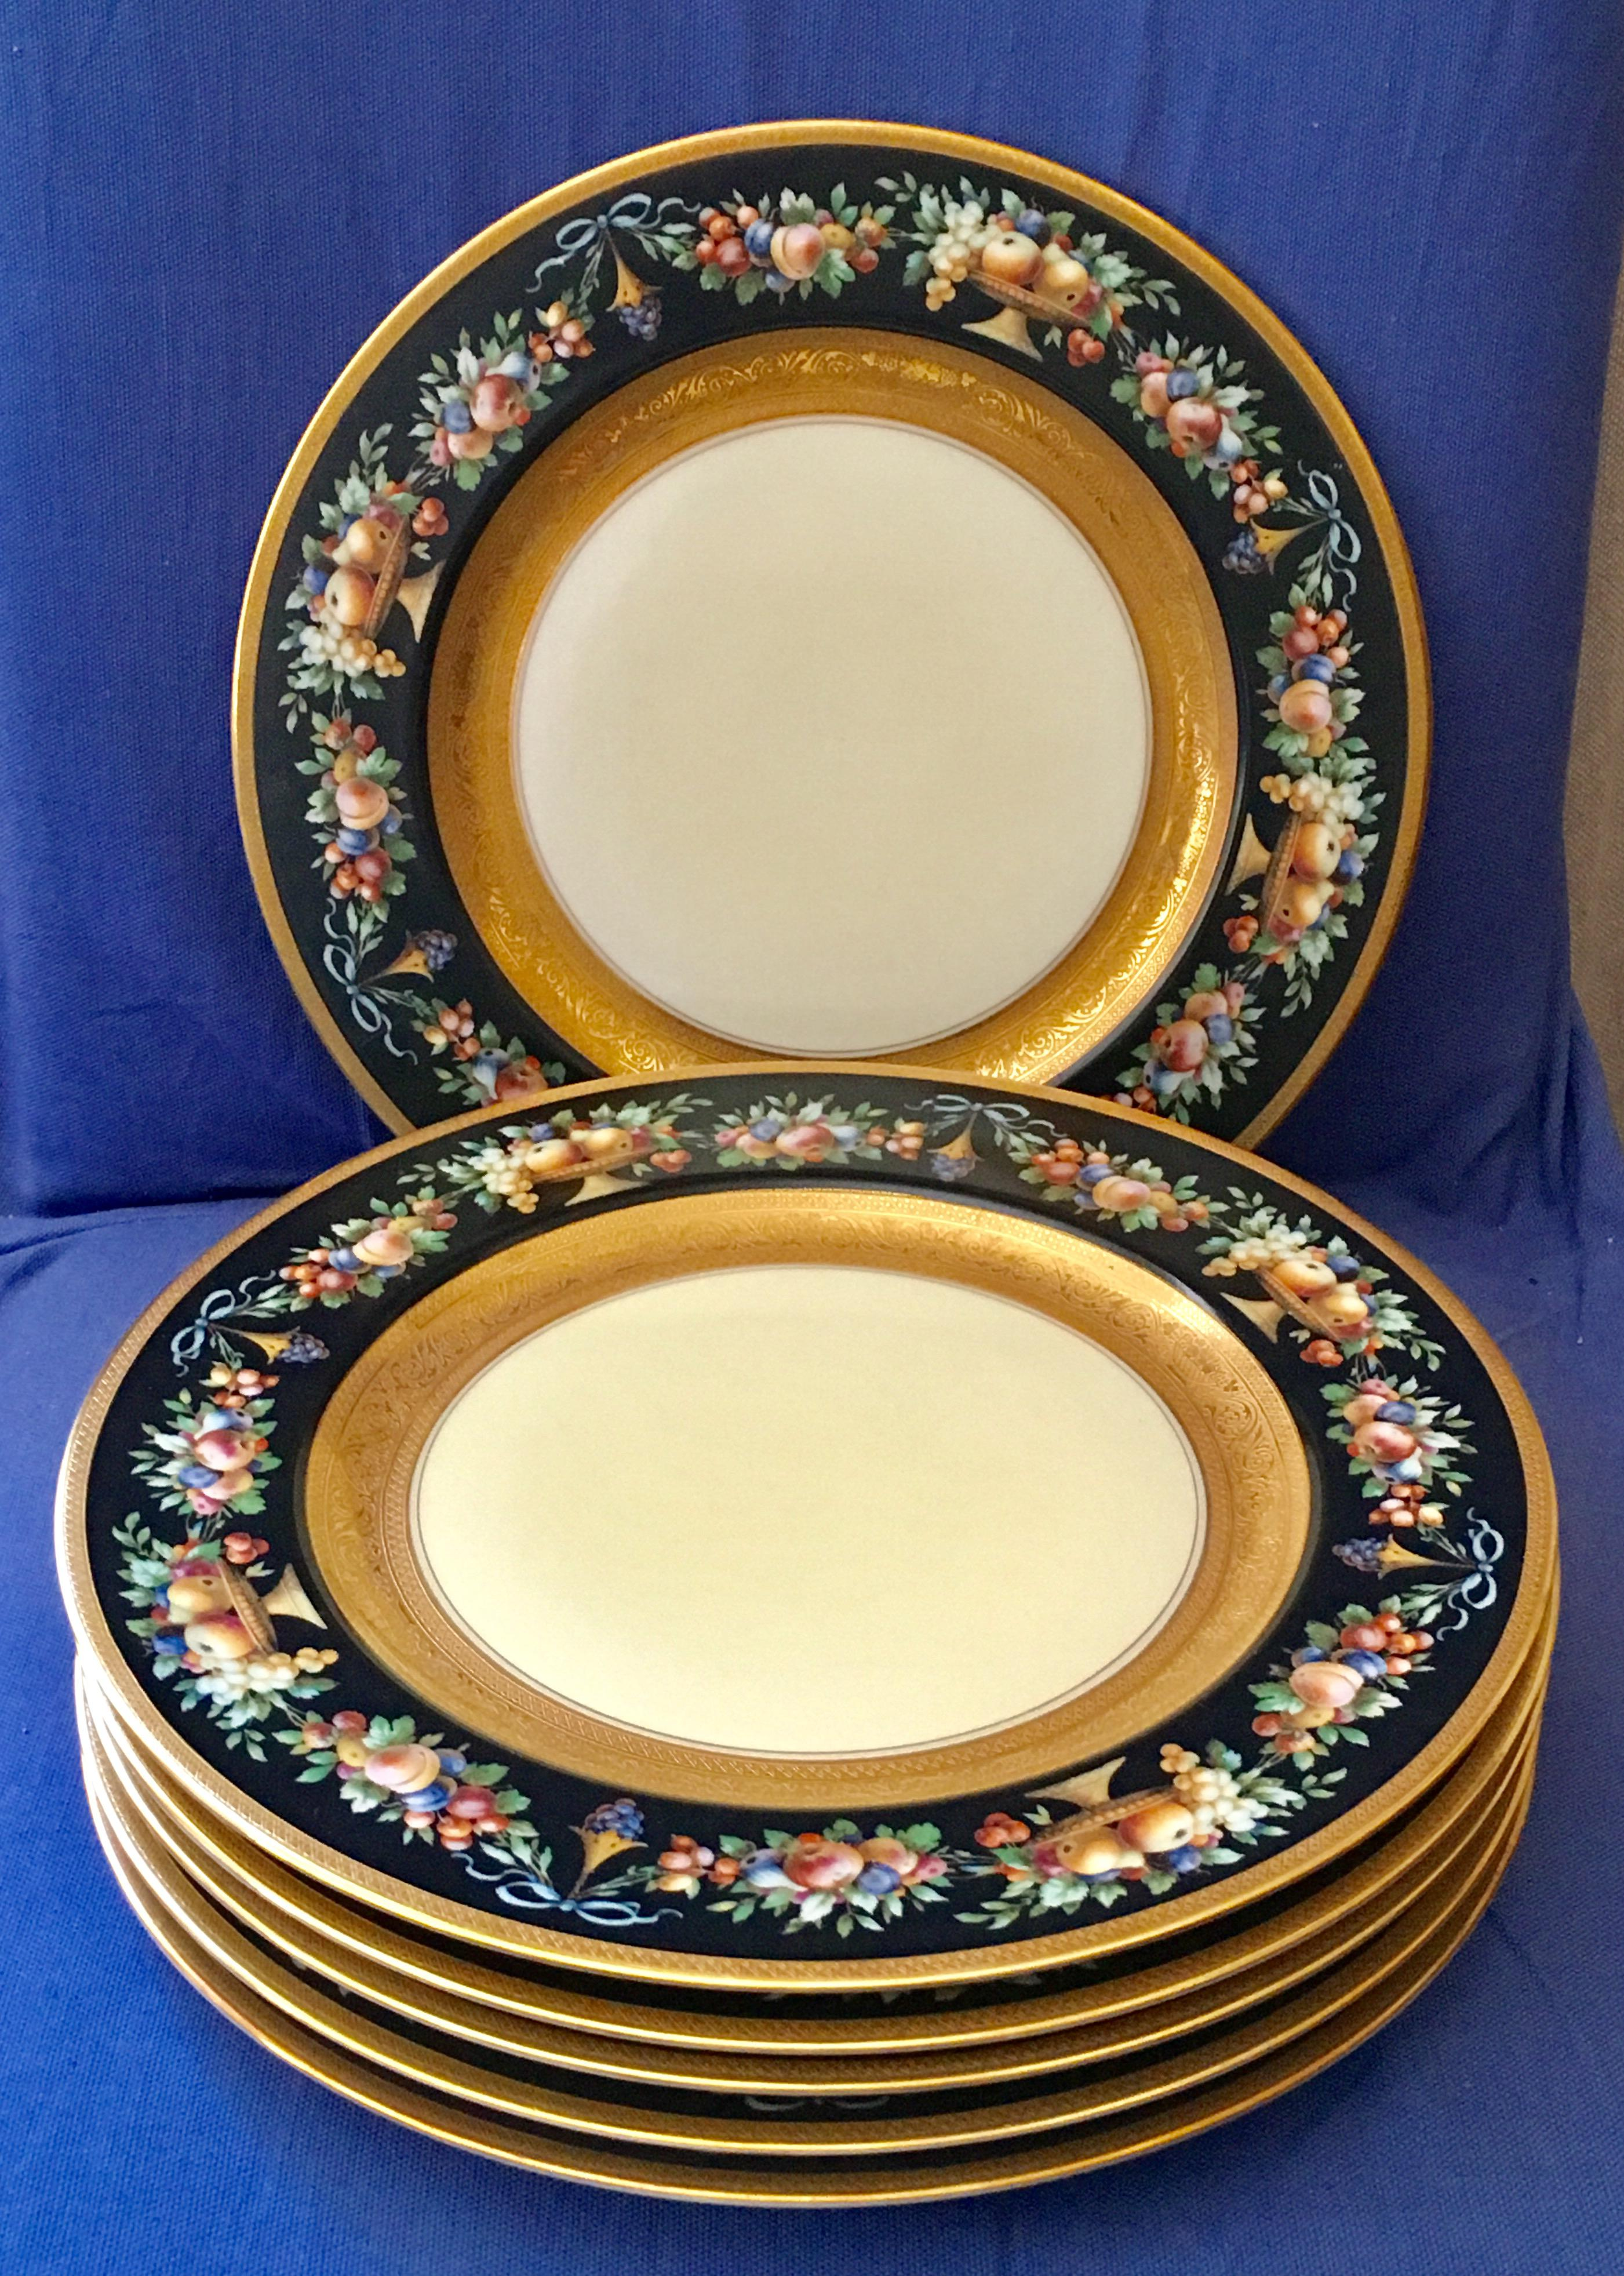 Black Knight Selb Bavaria Gold Banded Dinner Plates - Set of 6 - Image 5 of  sc 1 st  Chairish & Black Knight Selb Bavaria Gold Banded Dinner Plates - Set of 6 ...